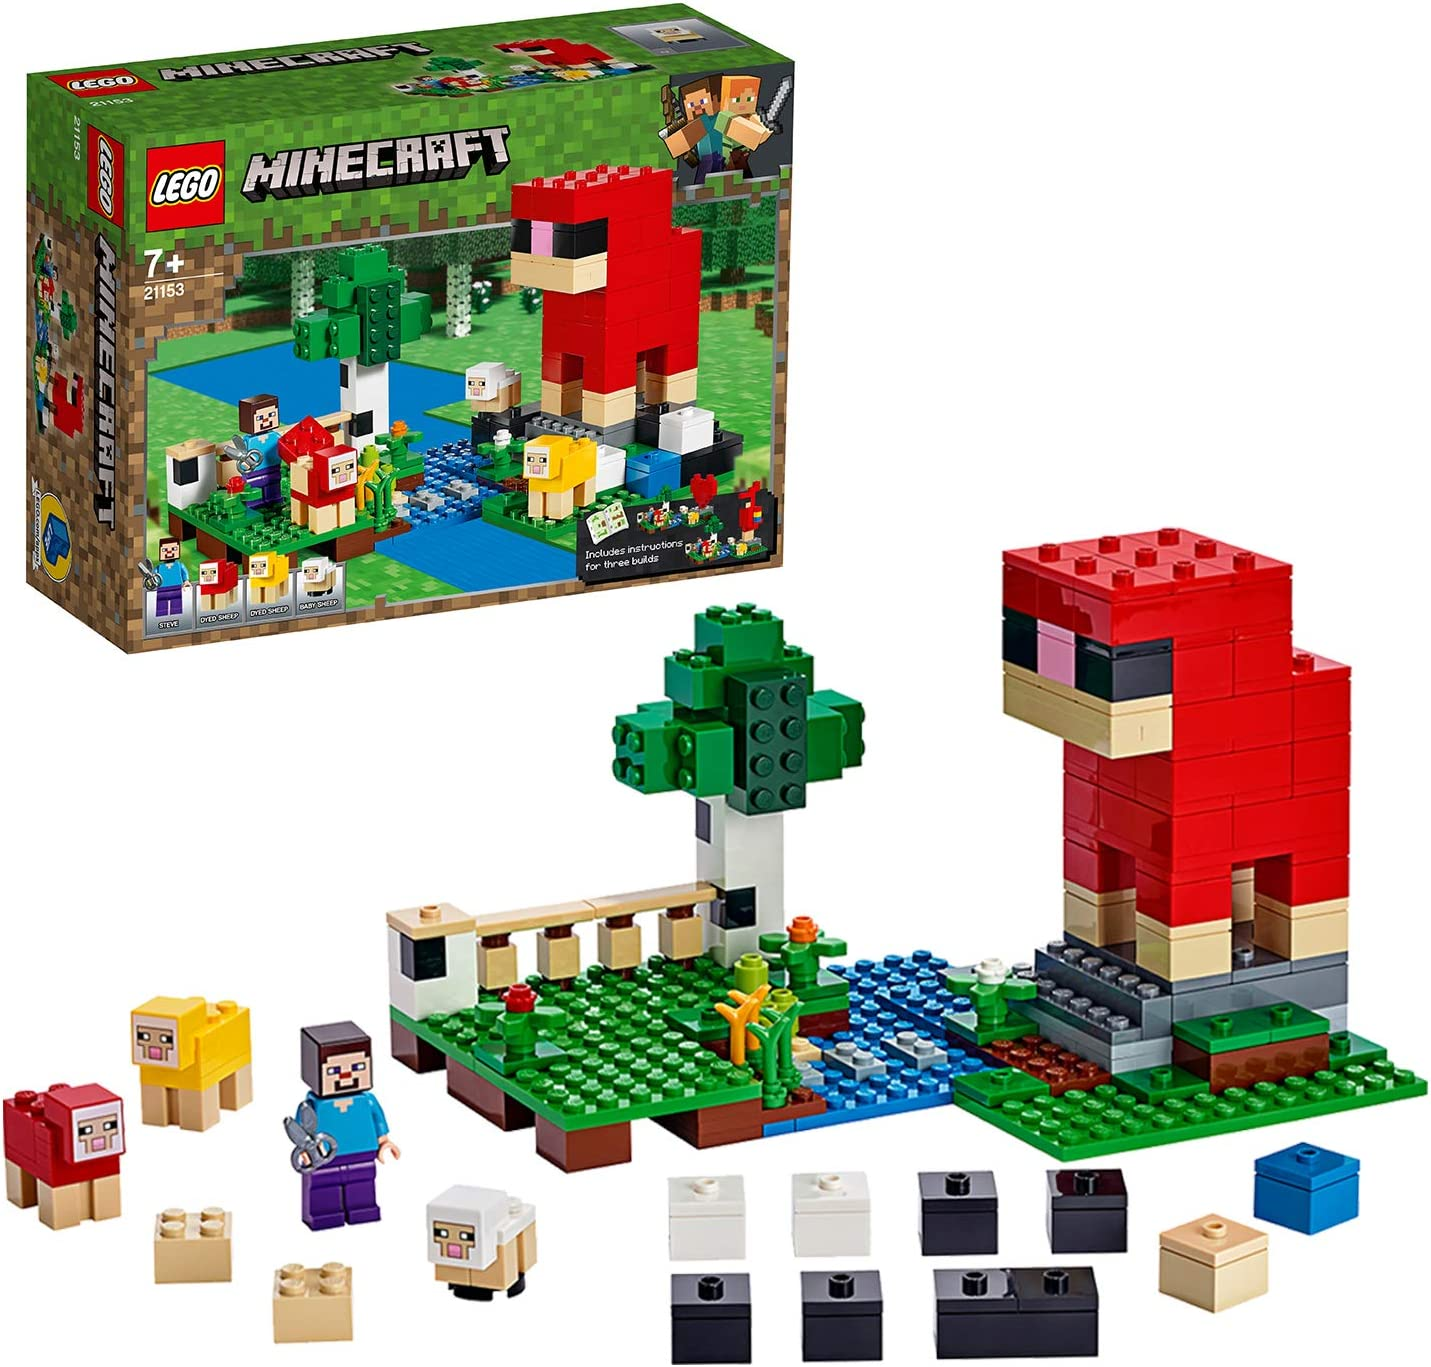 LEGO 21153 Minecraft The Wool Farm Adventures Building Set with Sheep and Steve 35% OFF £13 @ Amazon